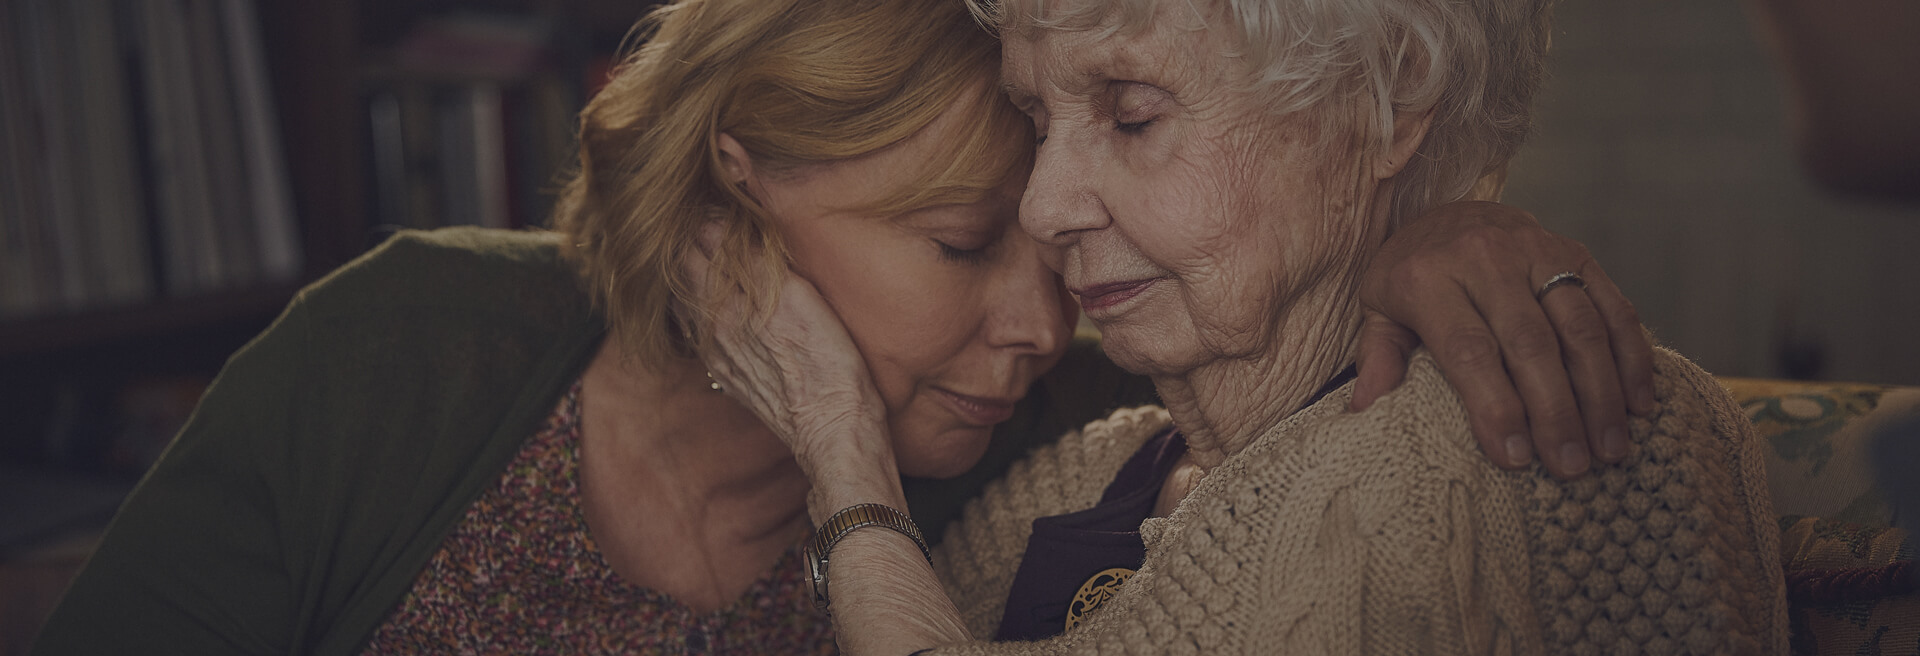 Prospero Health caregiver hugging elderly woman